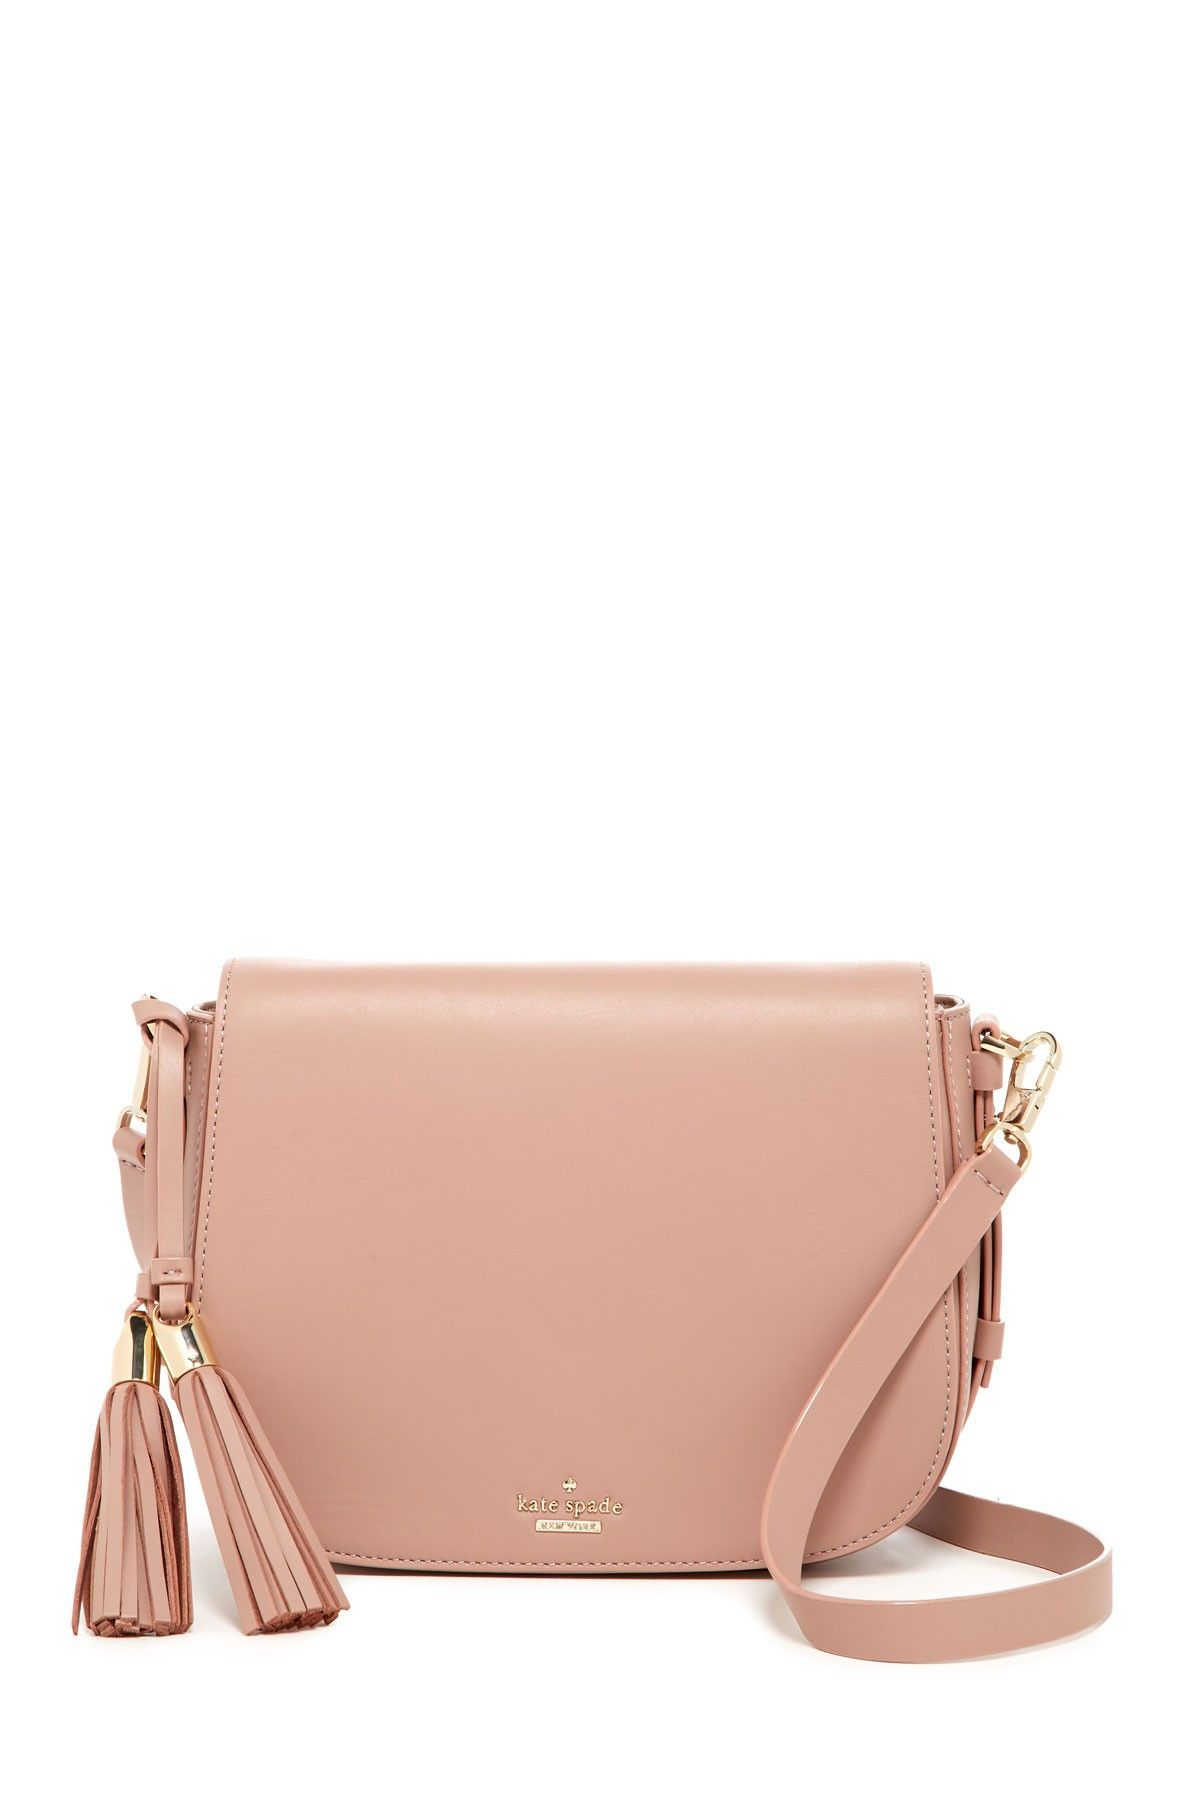 Kate Spade New York Elliot Crossbody